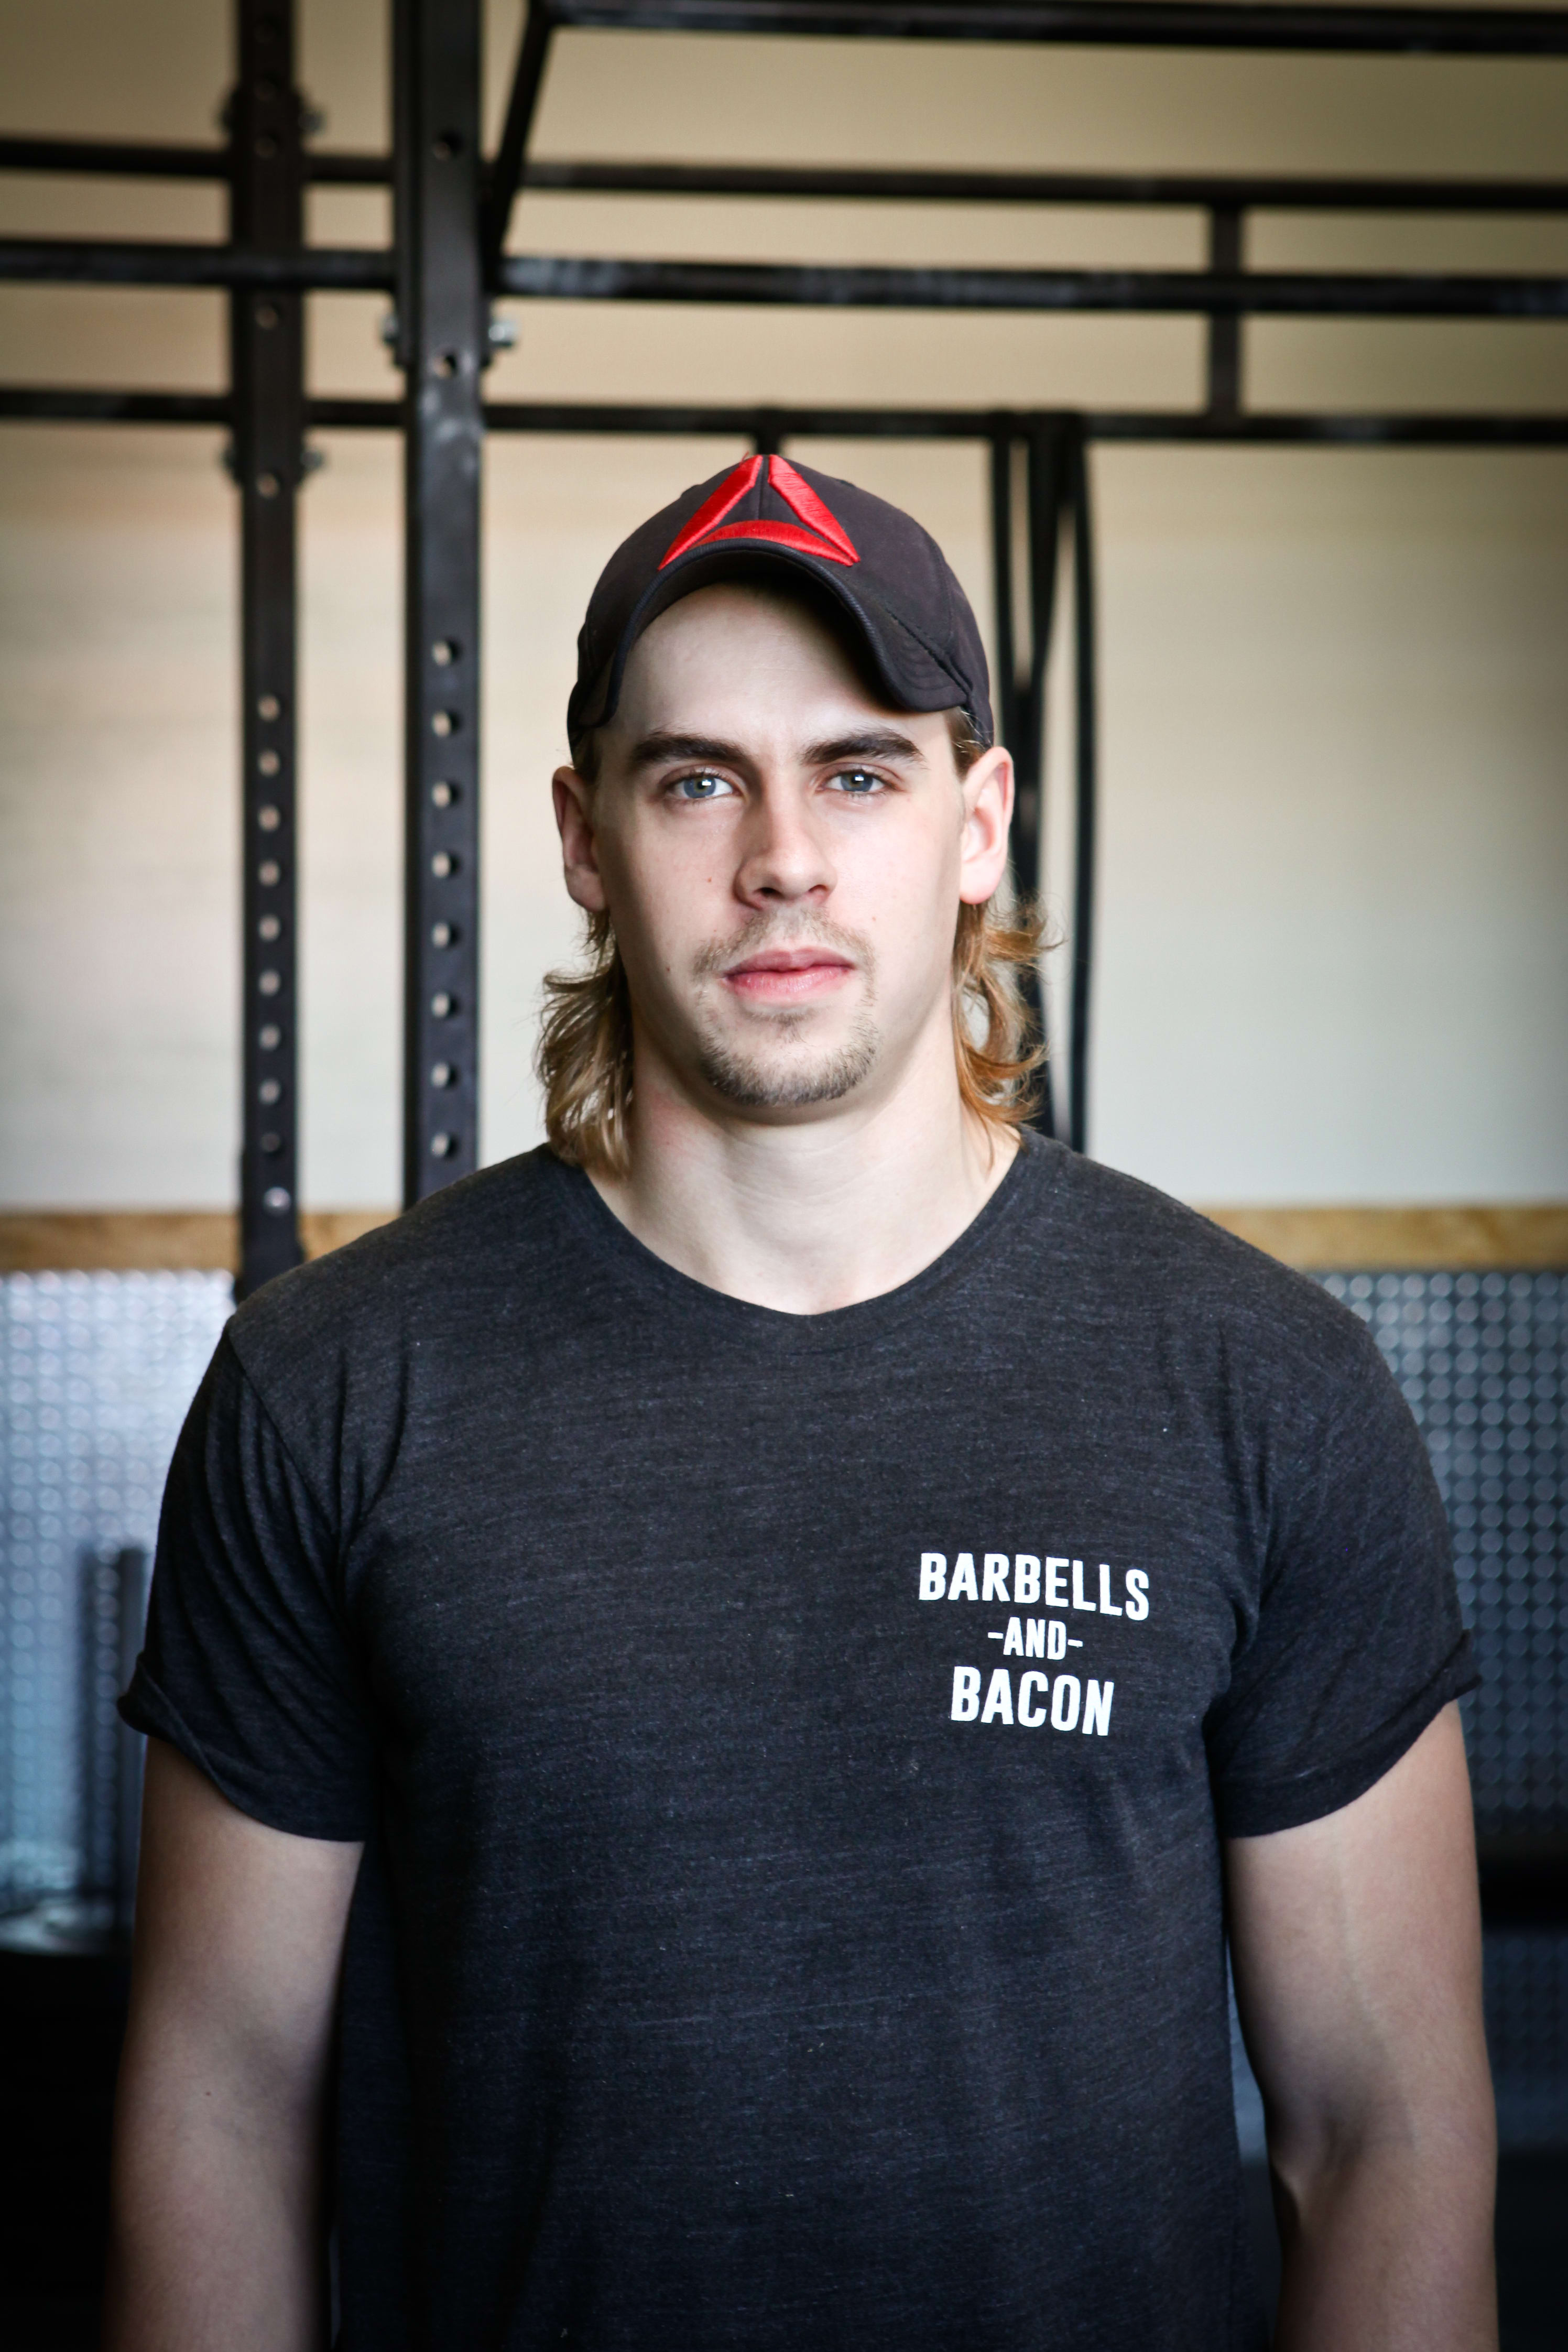 Jesse Sherriff in West London - West London Crossfit